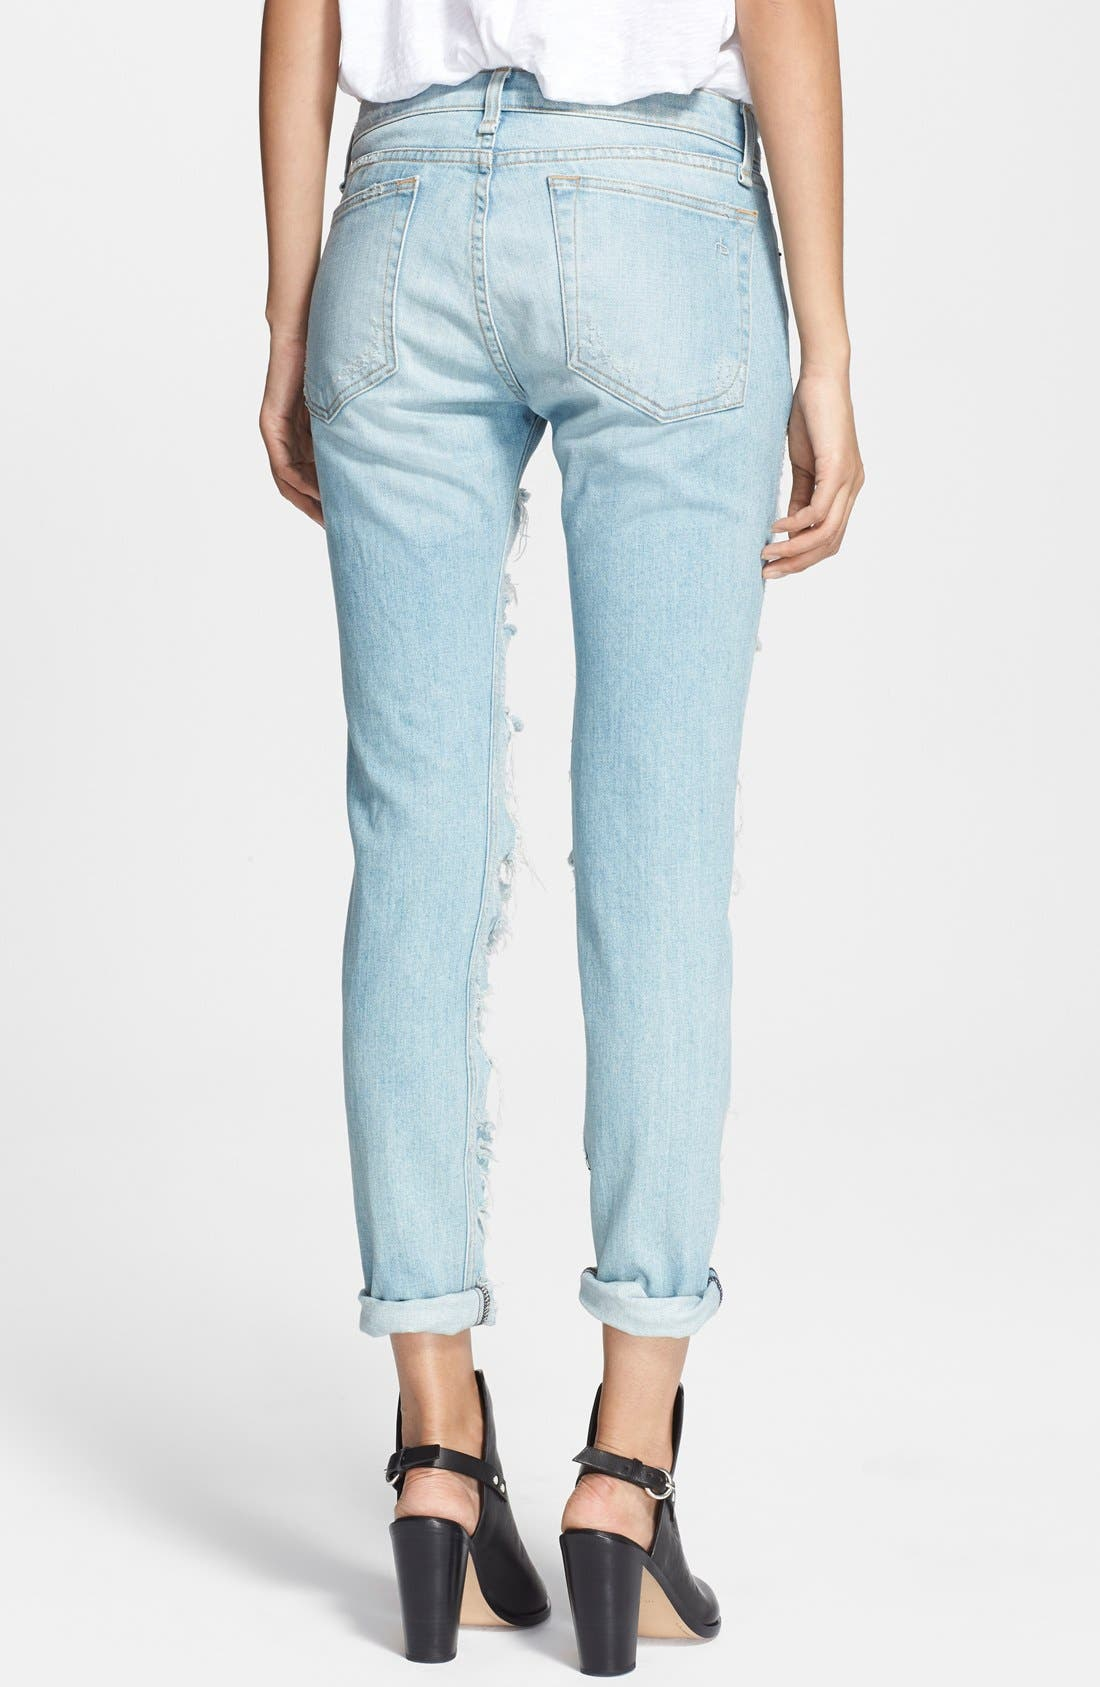 'The Dre' Destructed Jeans,                             Alternate thumbnail 3, color,                             400